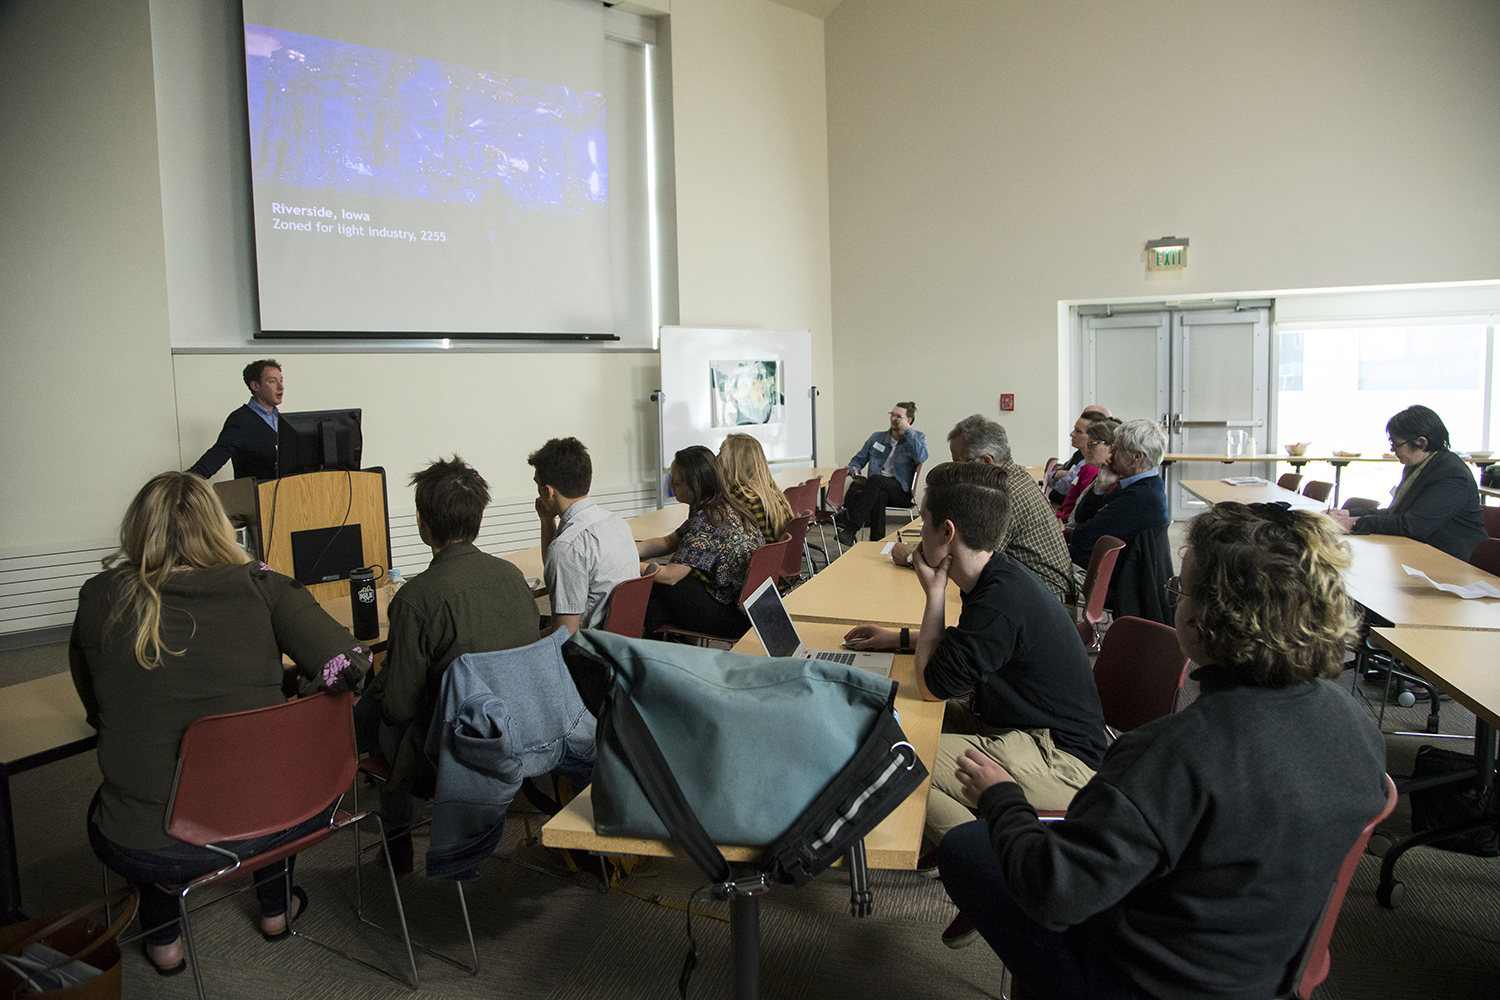 Students and judges listen to a presenter at an undergraduate presentation on City Planning for eight generations in the future in the advanced technologies building on April 24th, 2019. (Michael Guhin/The Daily Iowan)